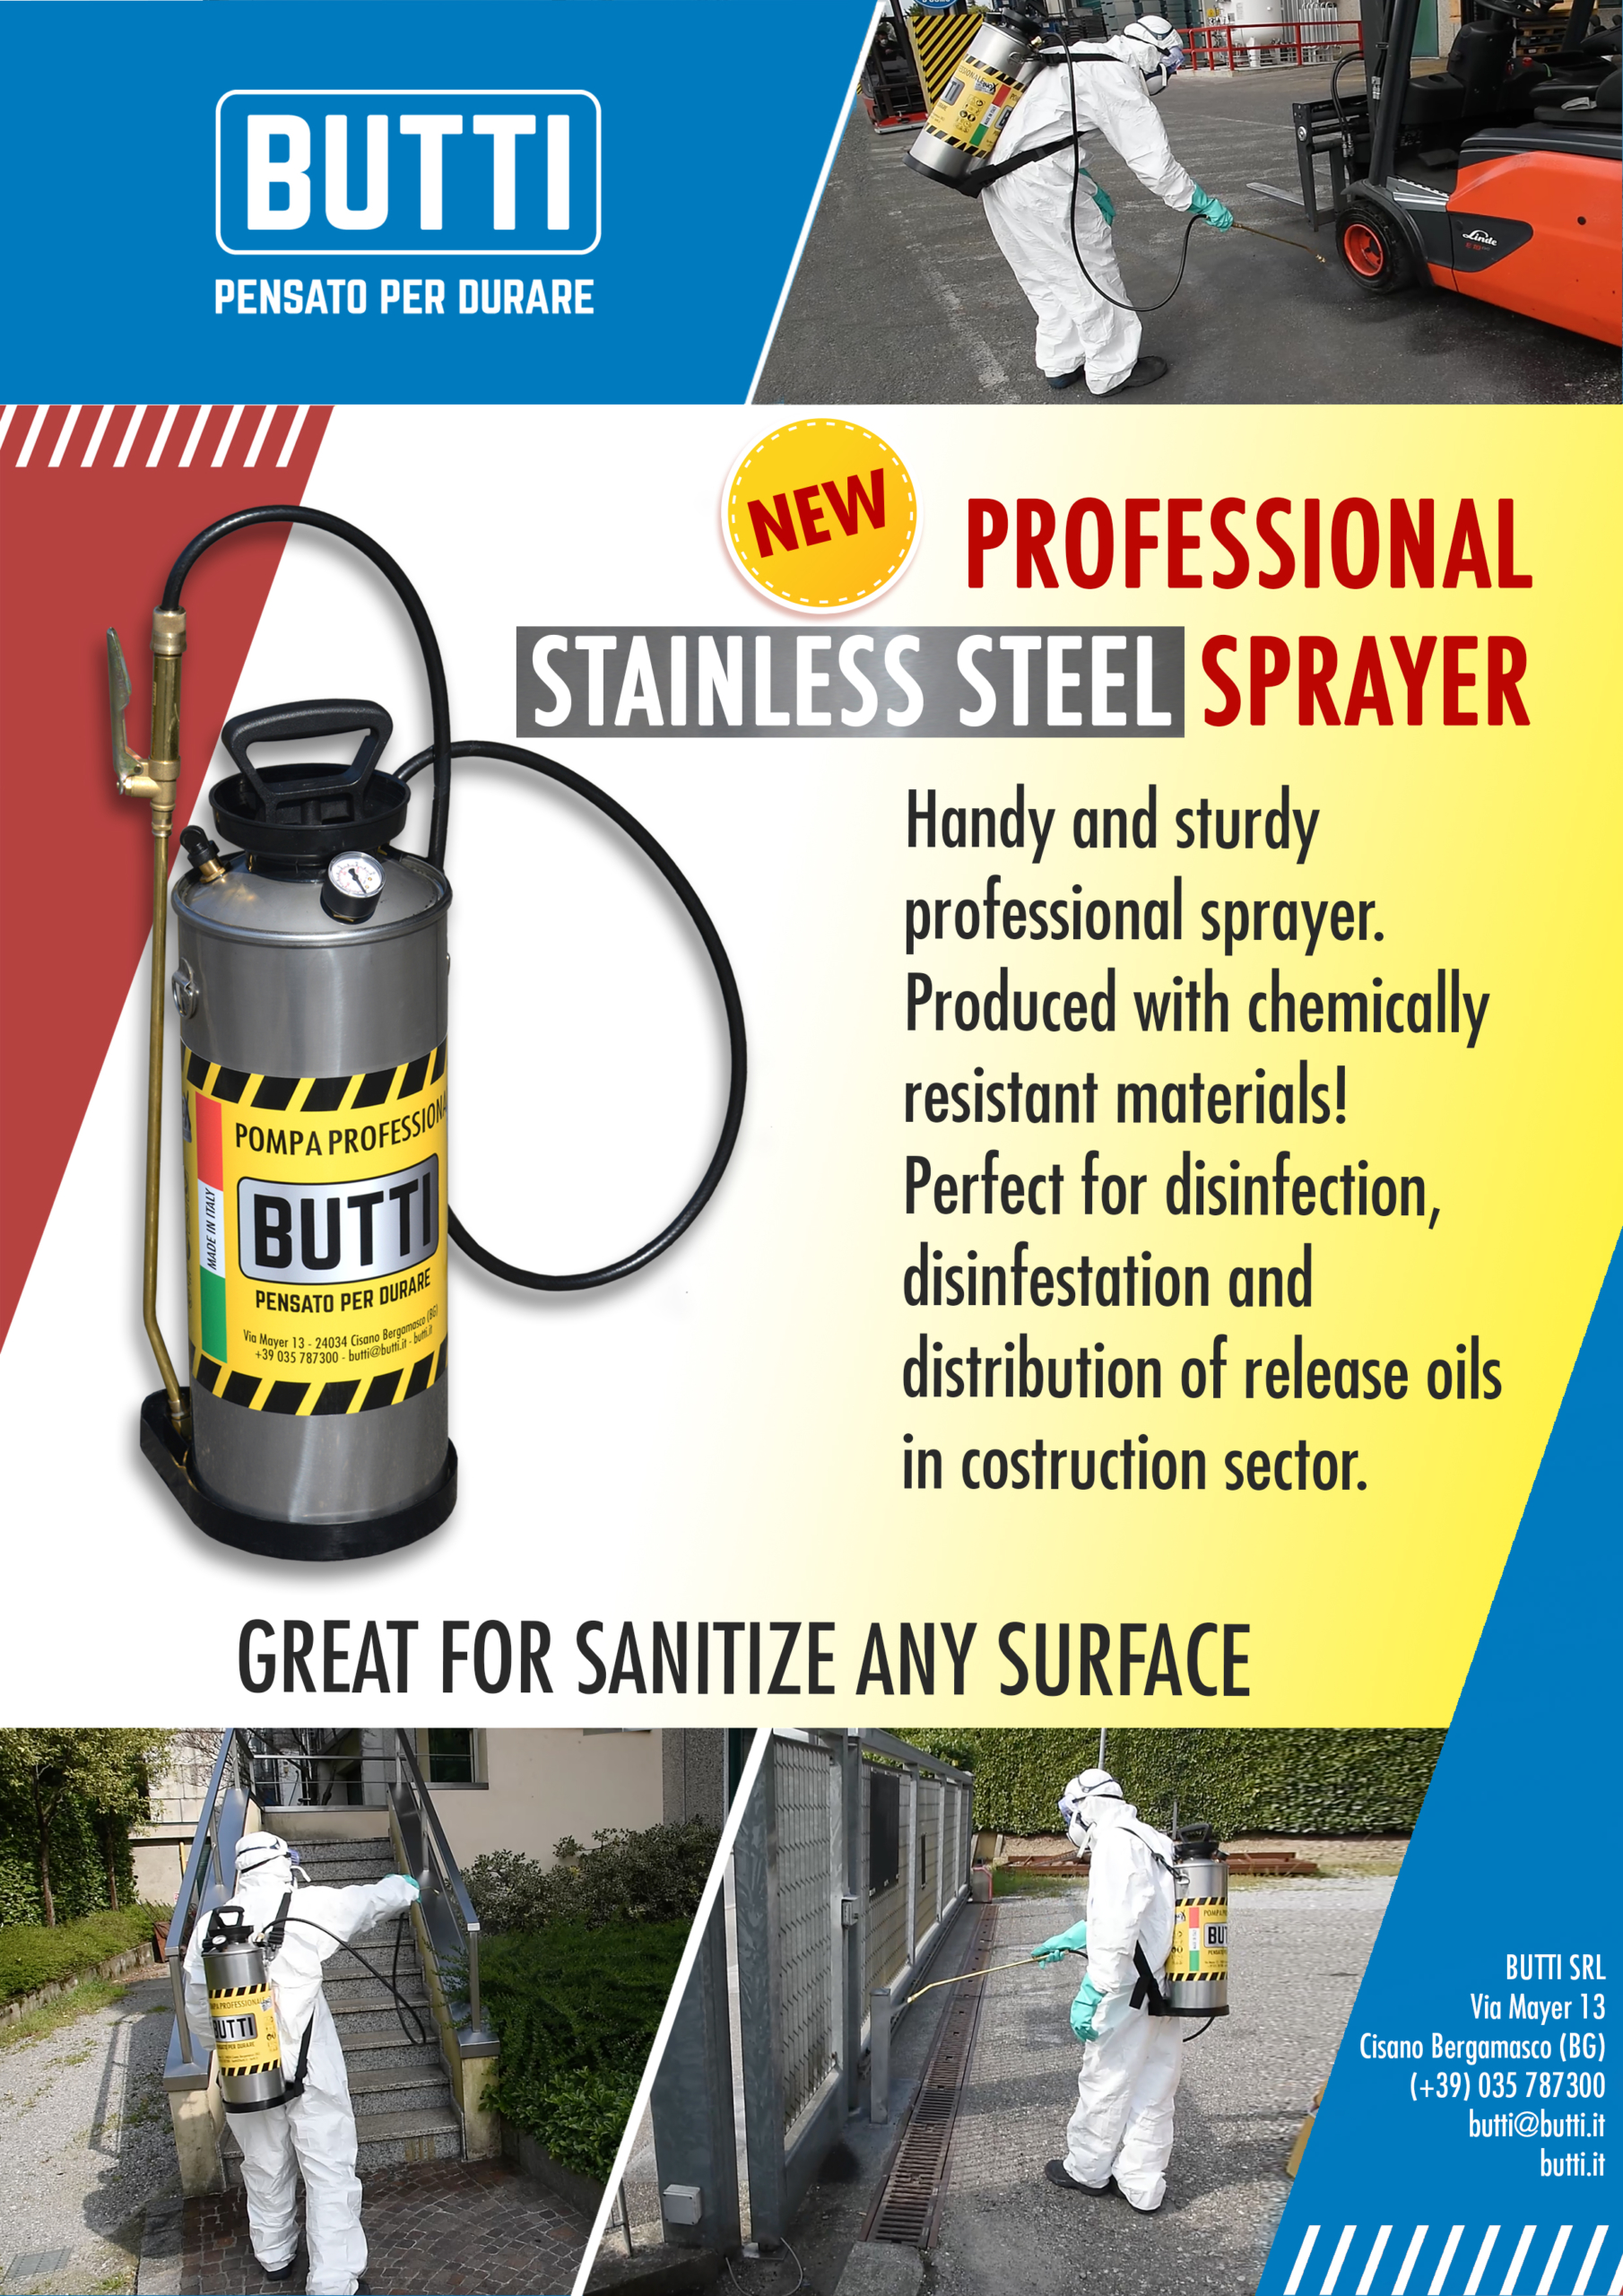 Professional stainless steel sprayer